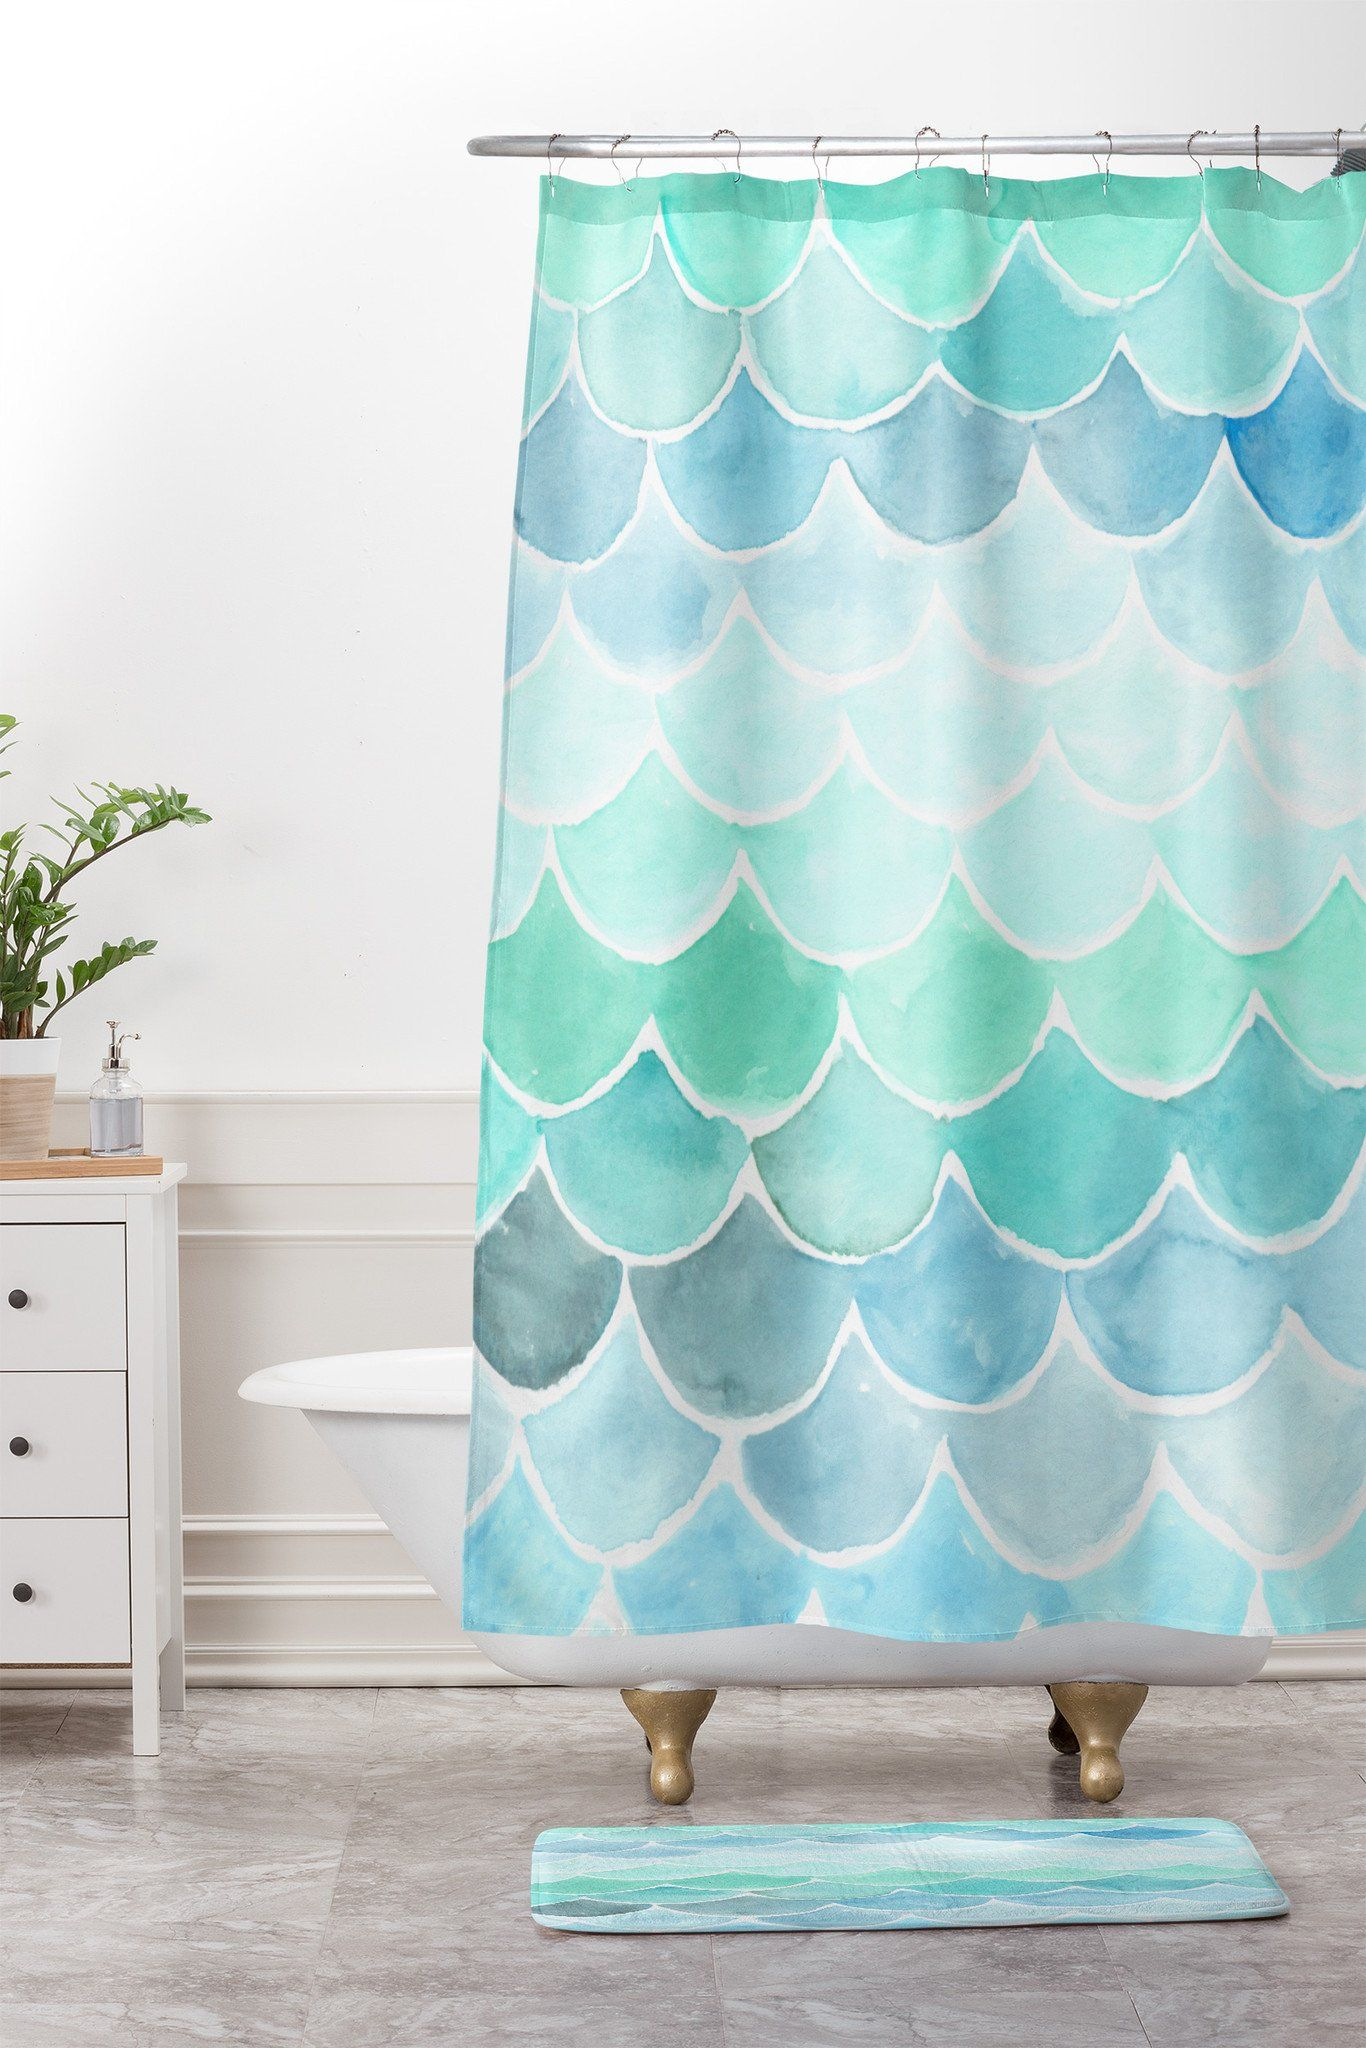 Wonder Forest Mermaid Scales Shower Curtain And Mat Deny Designs